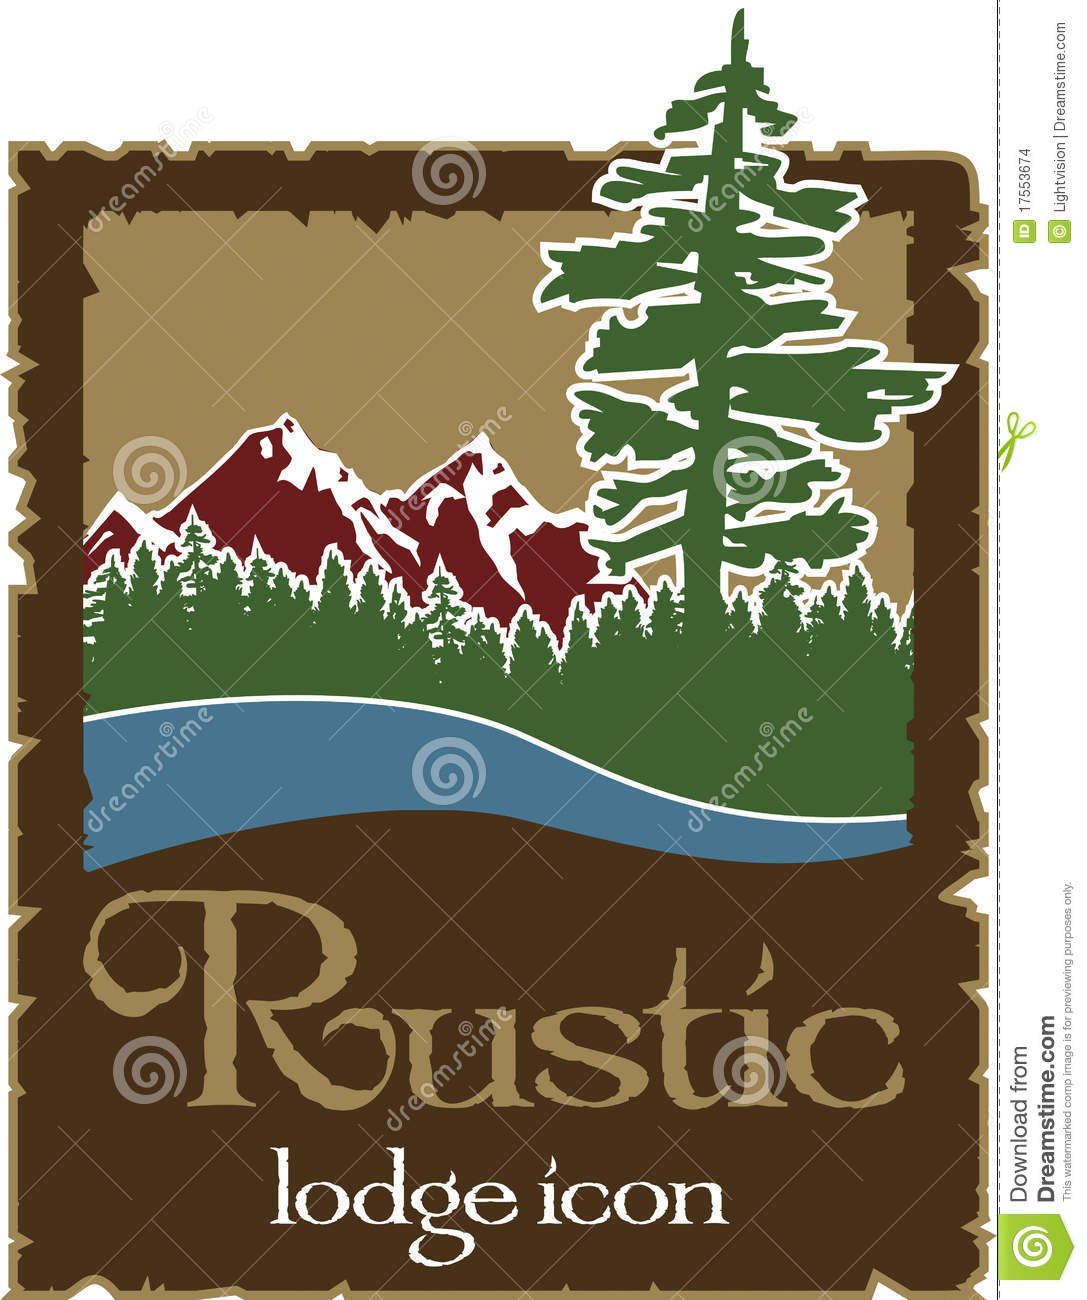 Rustic outdoors logo with copy space